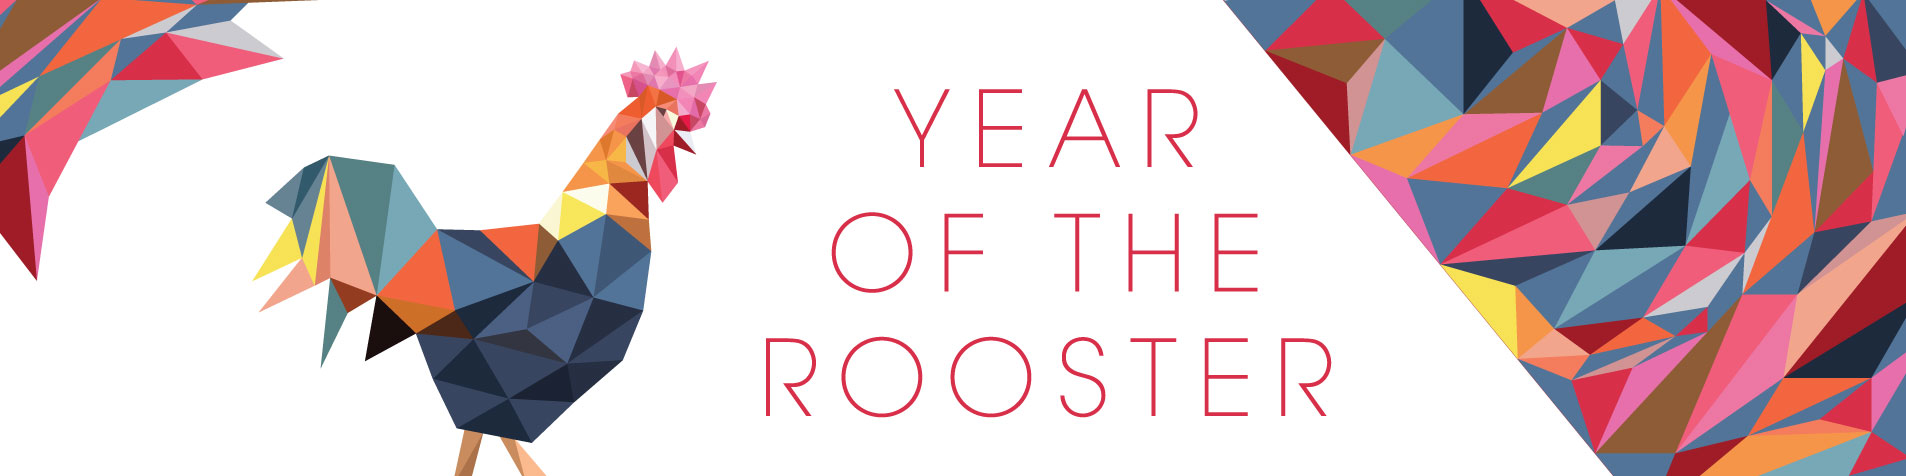 HYear of the Rooster